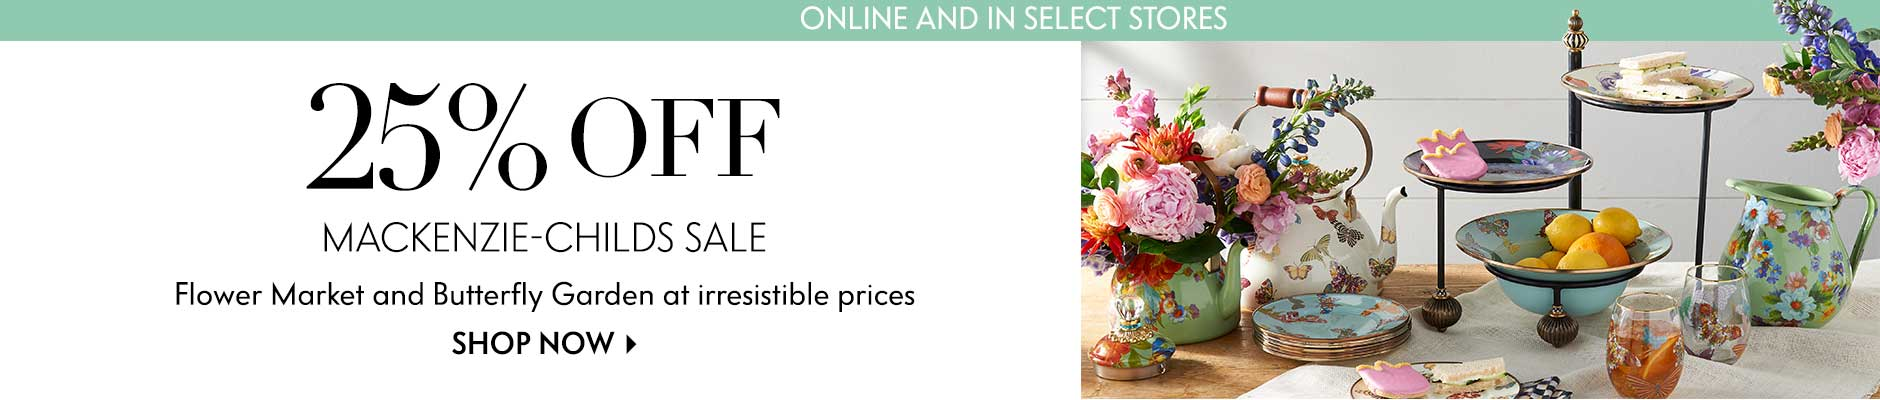 25% Off: MacKenzie-Childs Sale - Flower Market and Butterfly Garden at irresistible prices